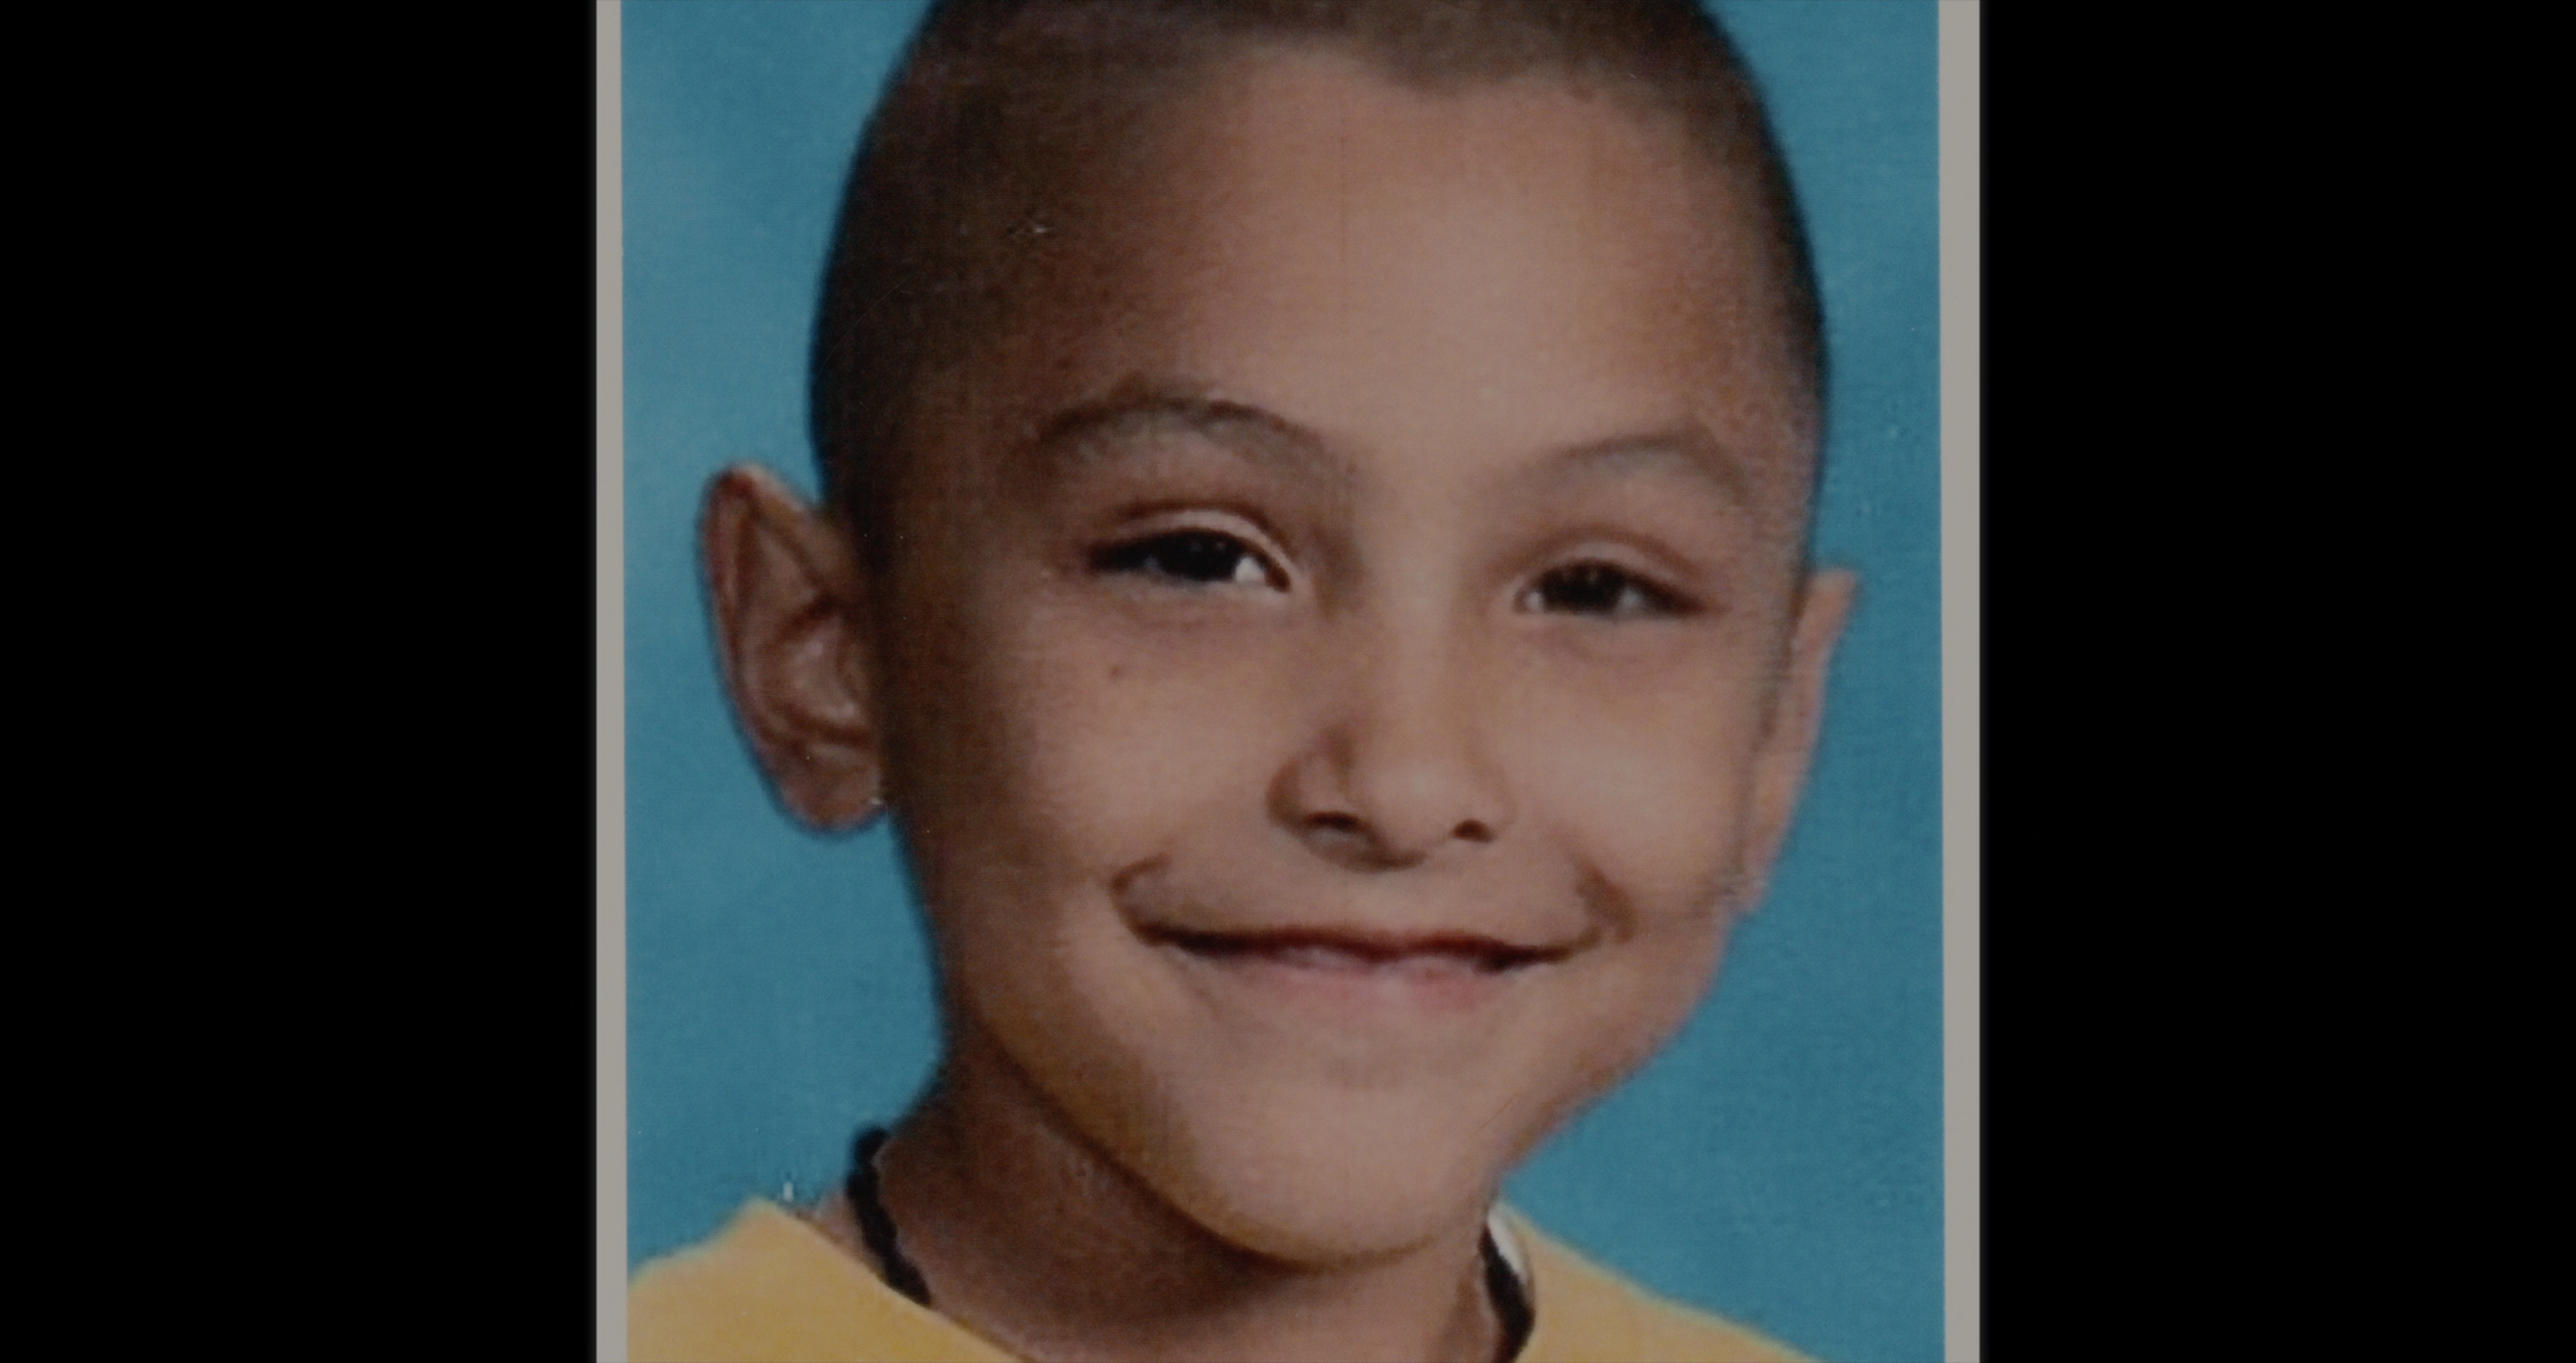 TRAILER: Netflix's 'The Trials of Gabriel Fernandez' Is a Doc Series About a Boy Tortured & Killed By His Mother